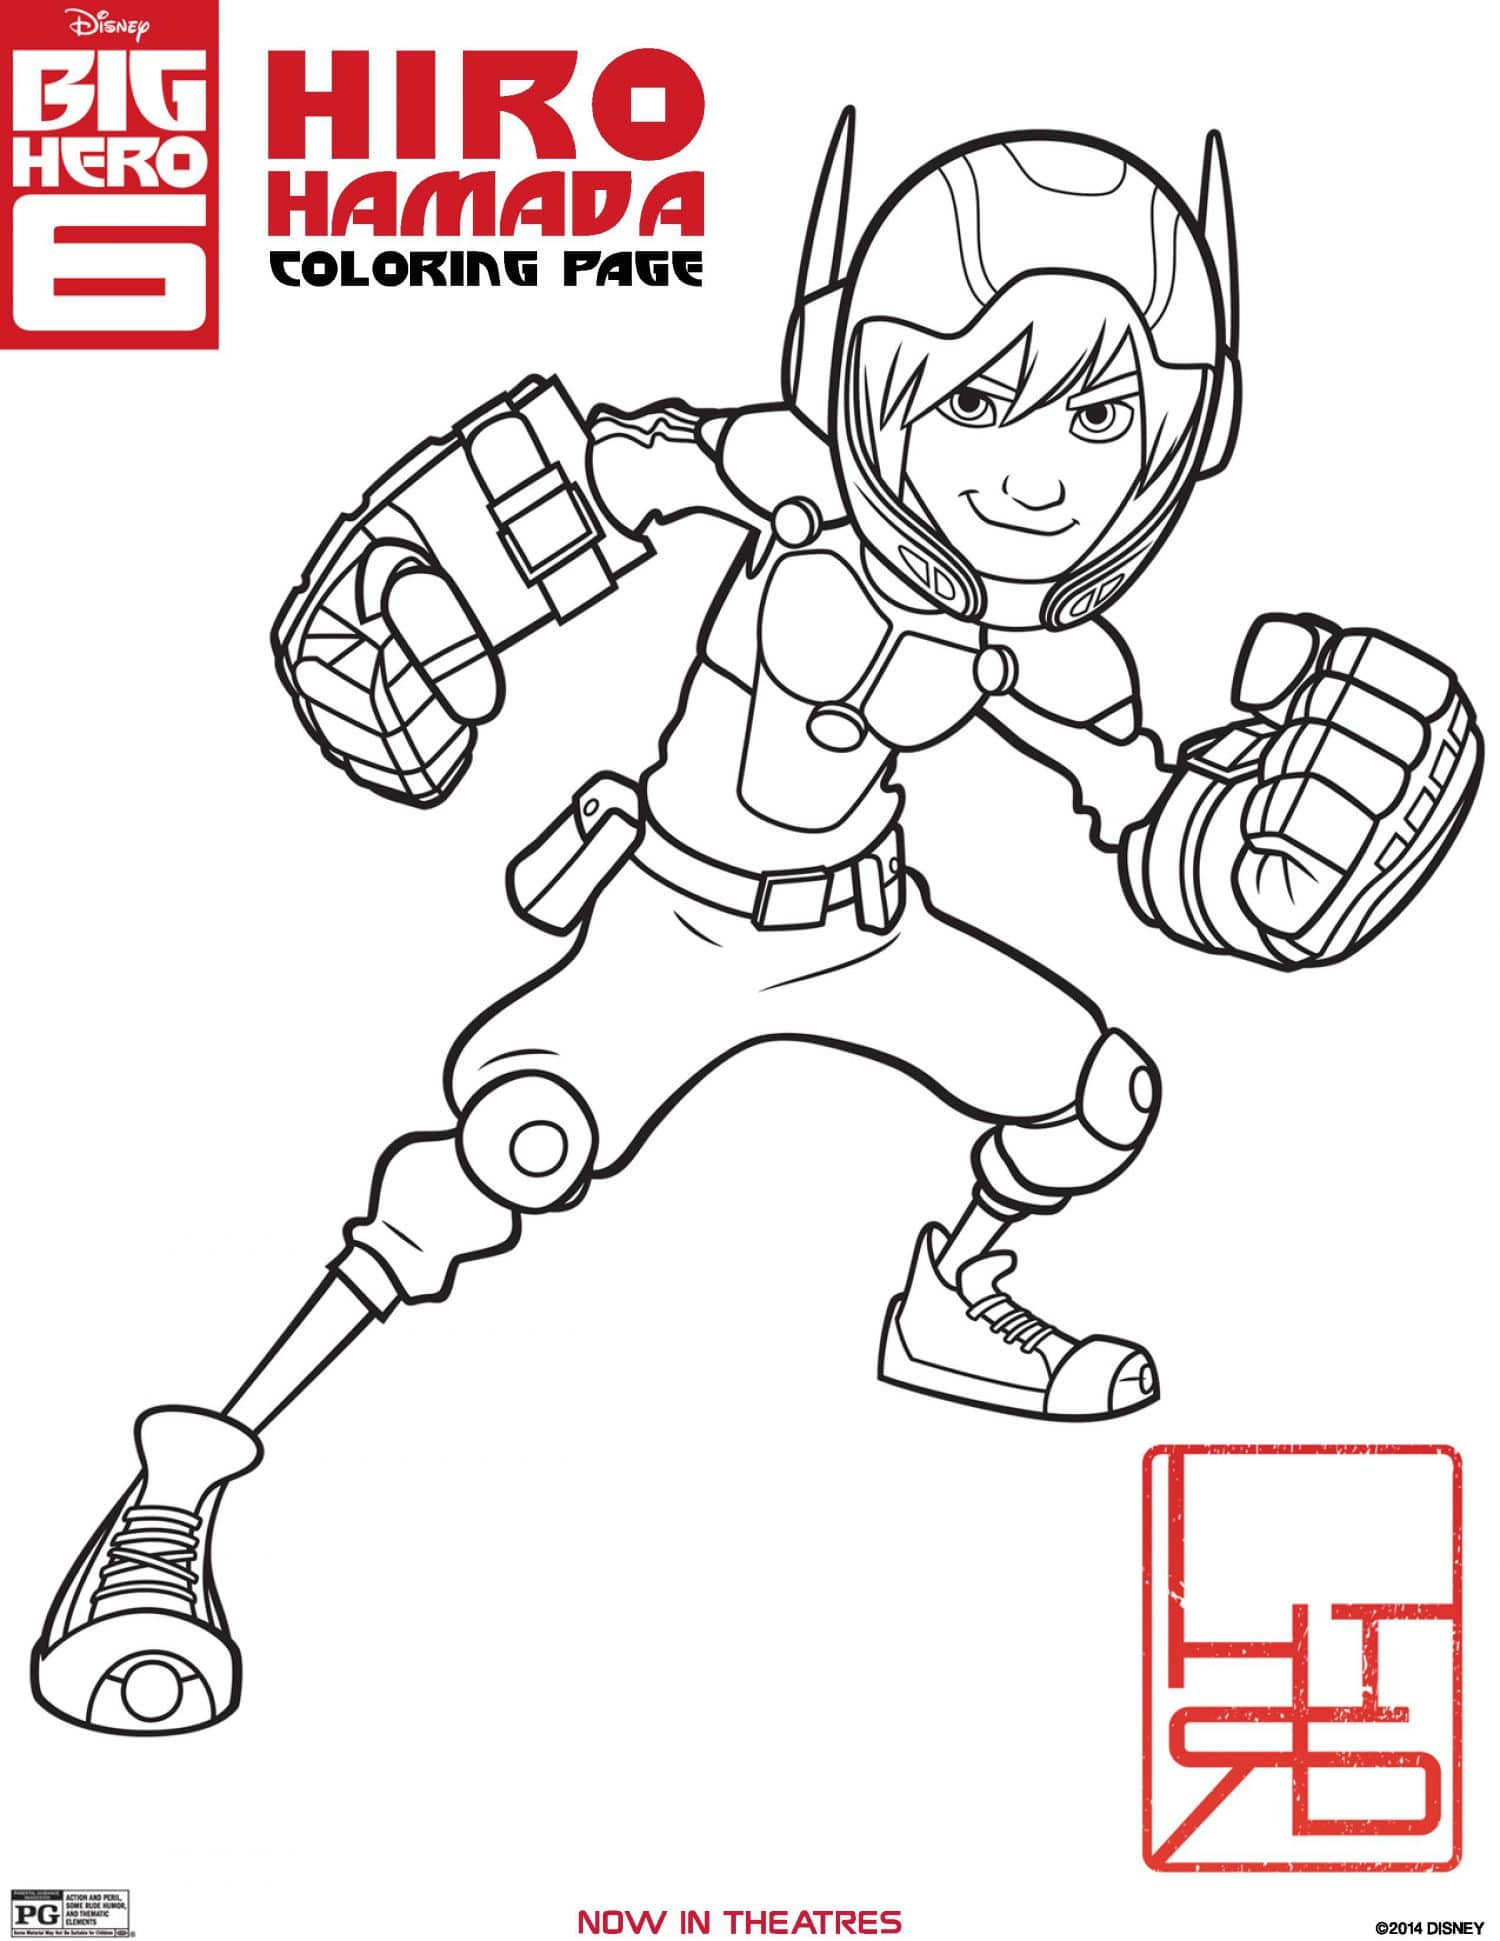 BIG HERO 11 Coloring Pages, Activity Sheets, and Printables